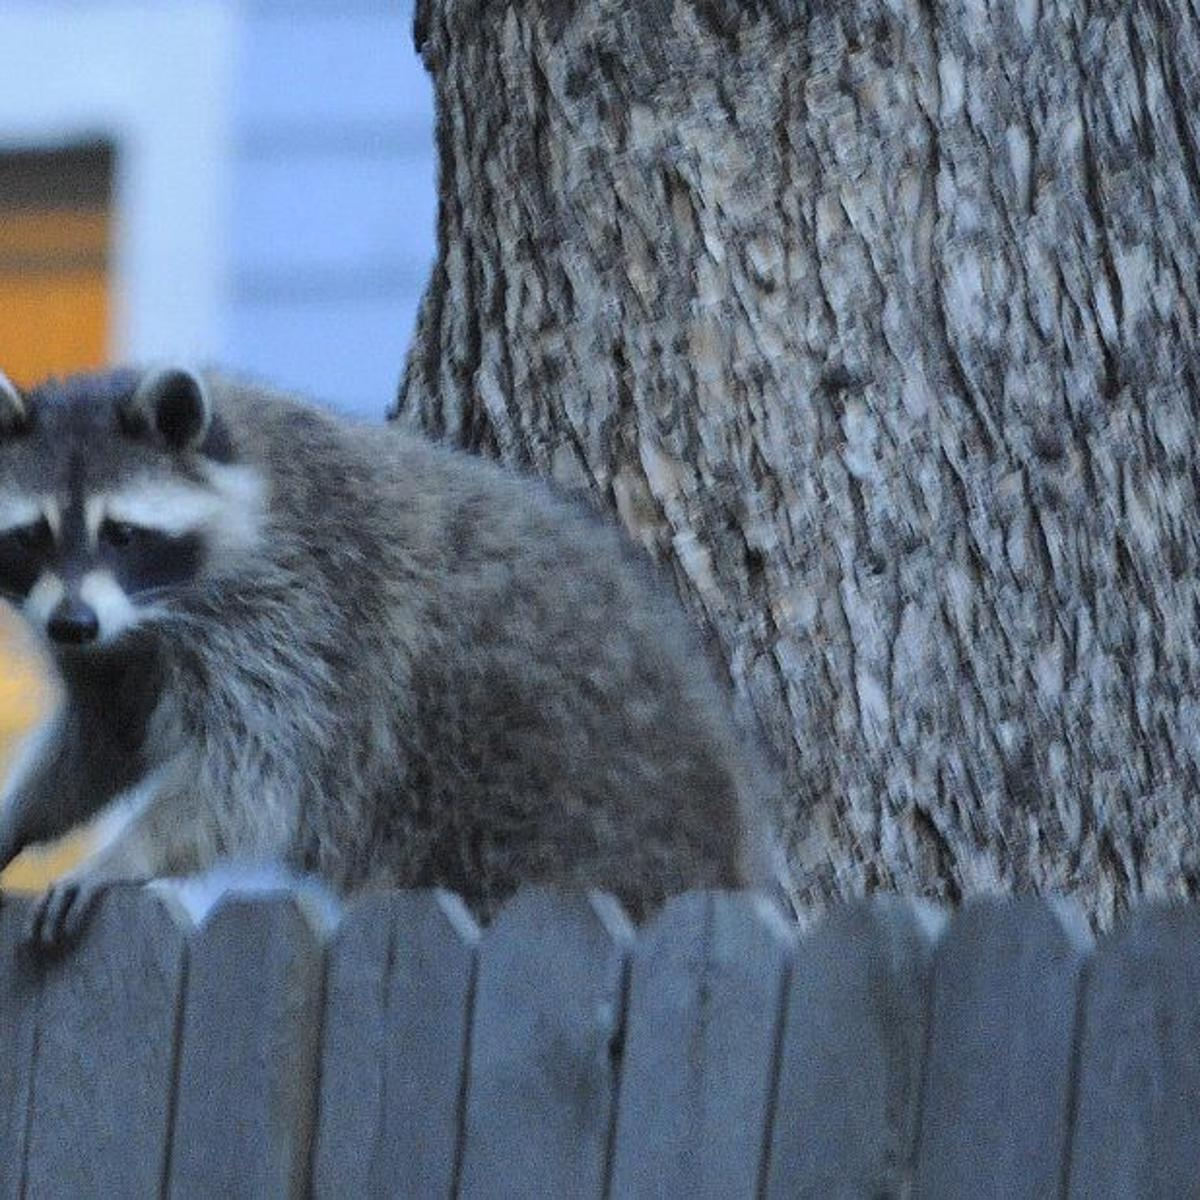 It's winter. Watch out for falling raccoons. | Colorado ... on raccoon in bedroom, raccoon in bed, raccoon in kitchen, raccoon in attic, raccoon in garage, raccoon in paint, raccoon in space, raccoon in room, raccoon in box, raccoon in office, raccoon in sink, raccoon in building, raccoon in water, raccoon in bathroom, raccoon in log, raccoon home, raccoon in bath, raccoon in wall, raccoon in the floor, raccoon in chair,